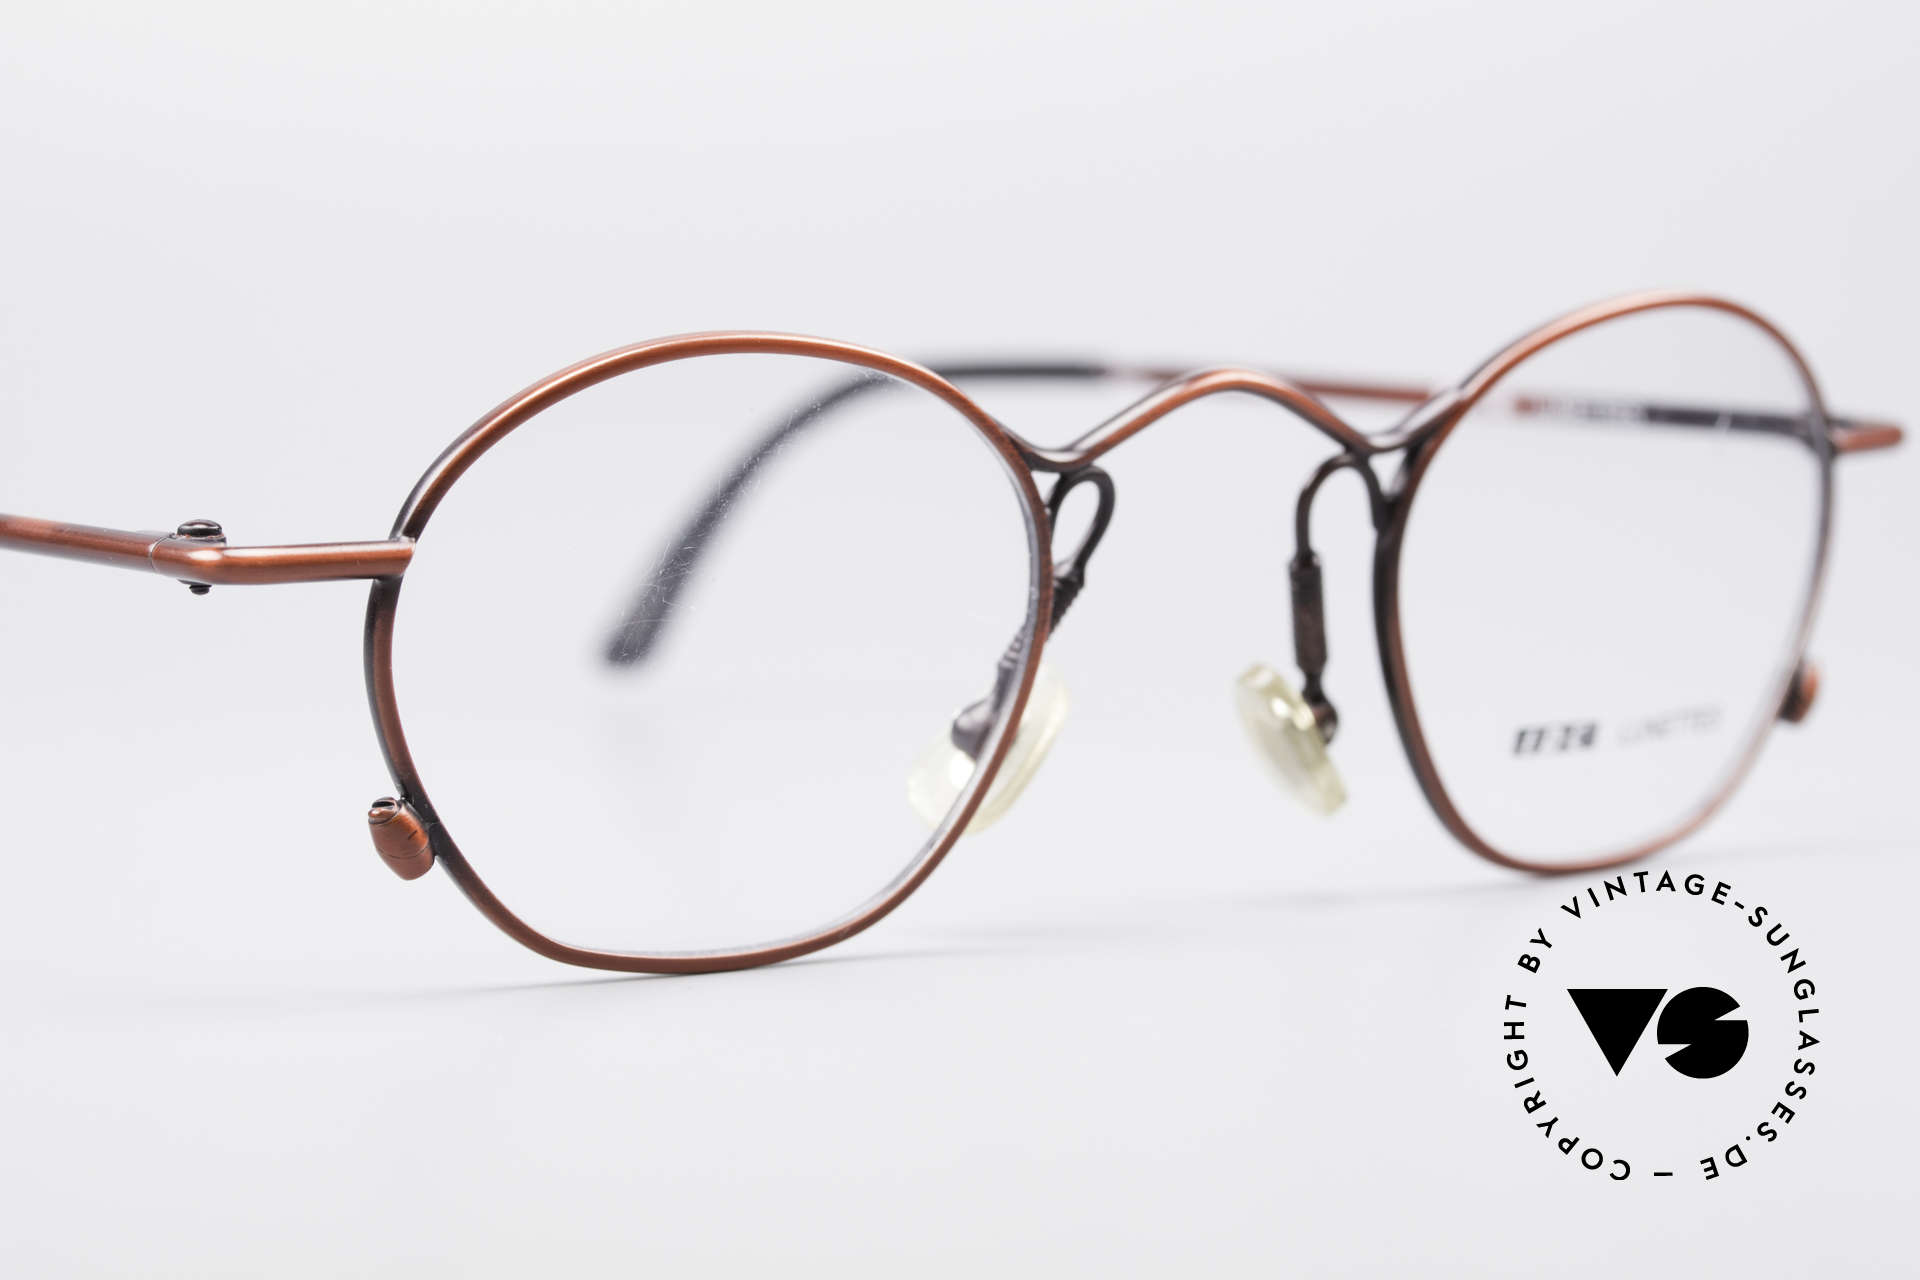 IDC 101 True Vintage No Retro Glasses, new old stock (like all our rare 90s designer frames), Made for Men and Women